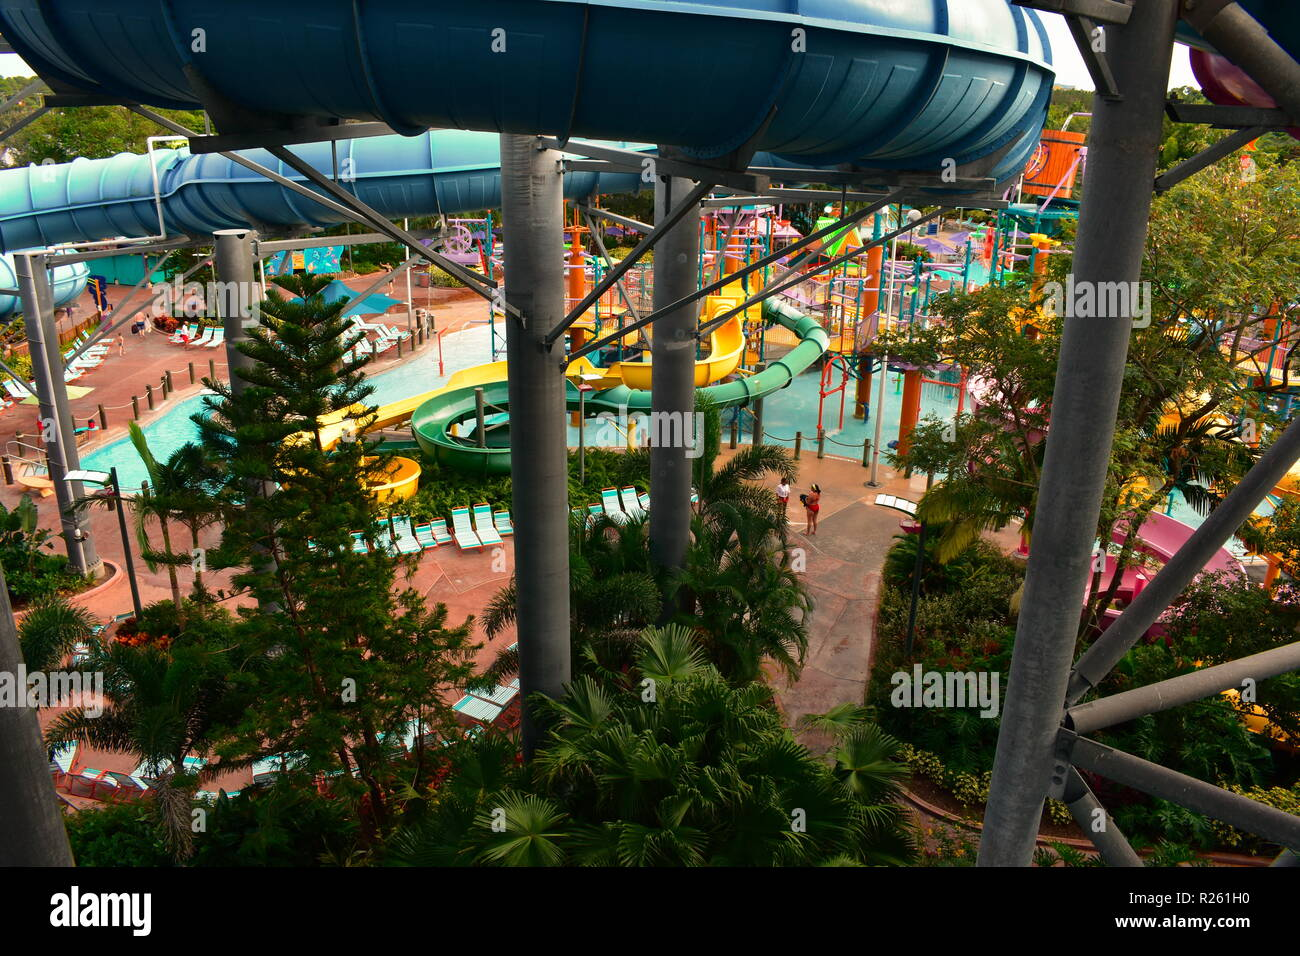 Aquatica water park stock photos aquatica water park stock images alamy for Outdoor swimming pool near slough